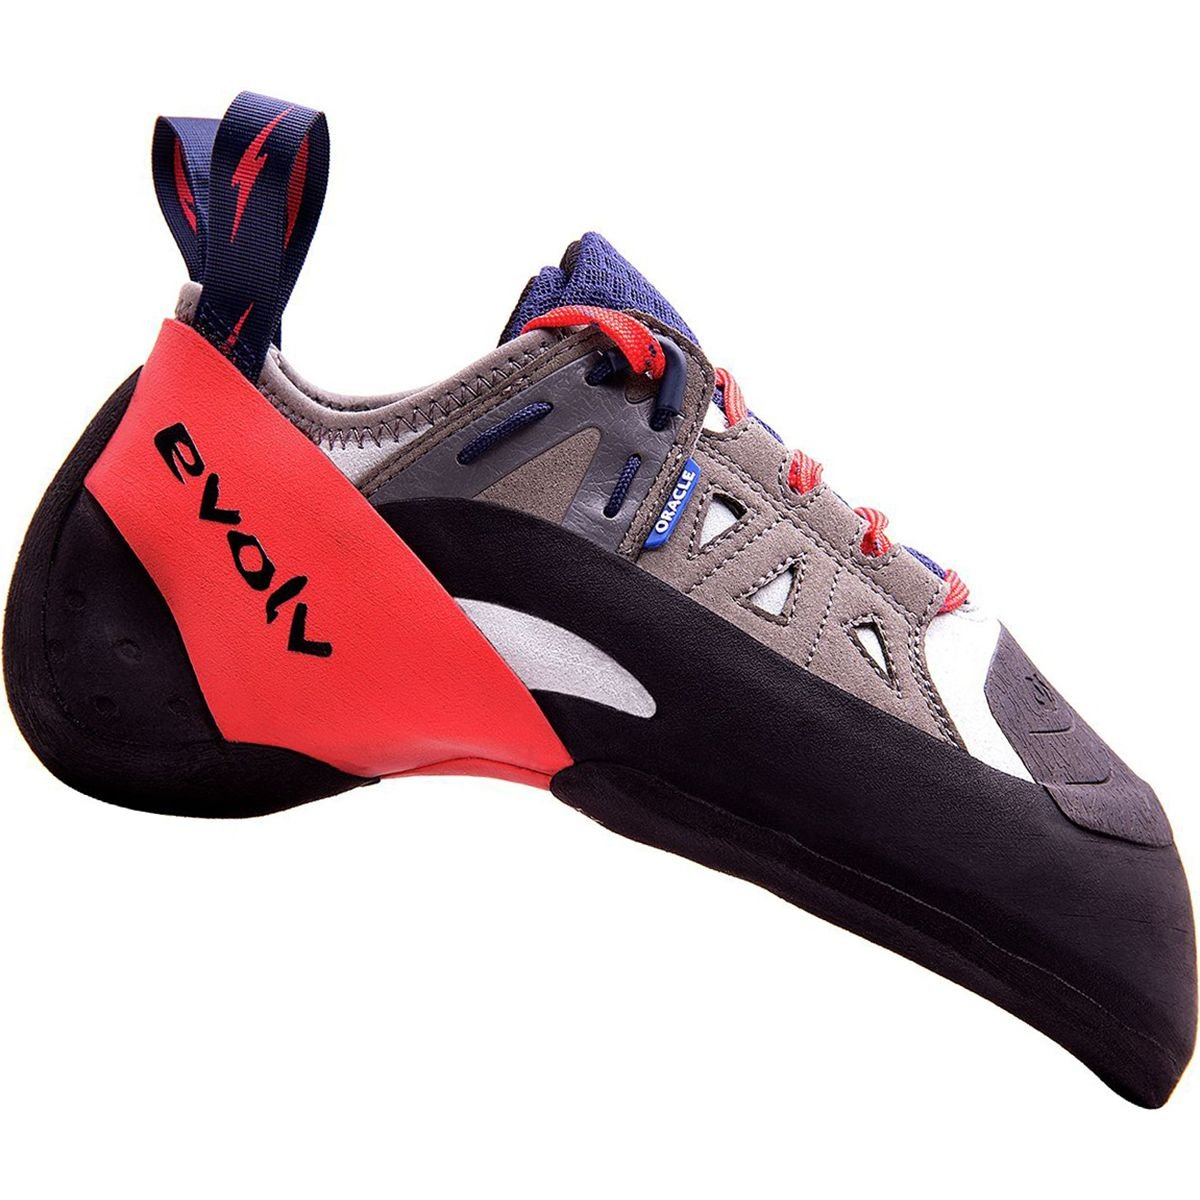 Evolv Oracle Climbing Shoe – Men 's B074W88YTB 9 D(M) US|Blue/Red/Gray Blue/Red/Gray 9 D(M) US